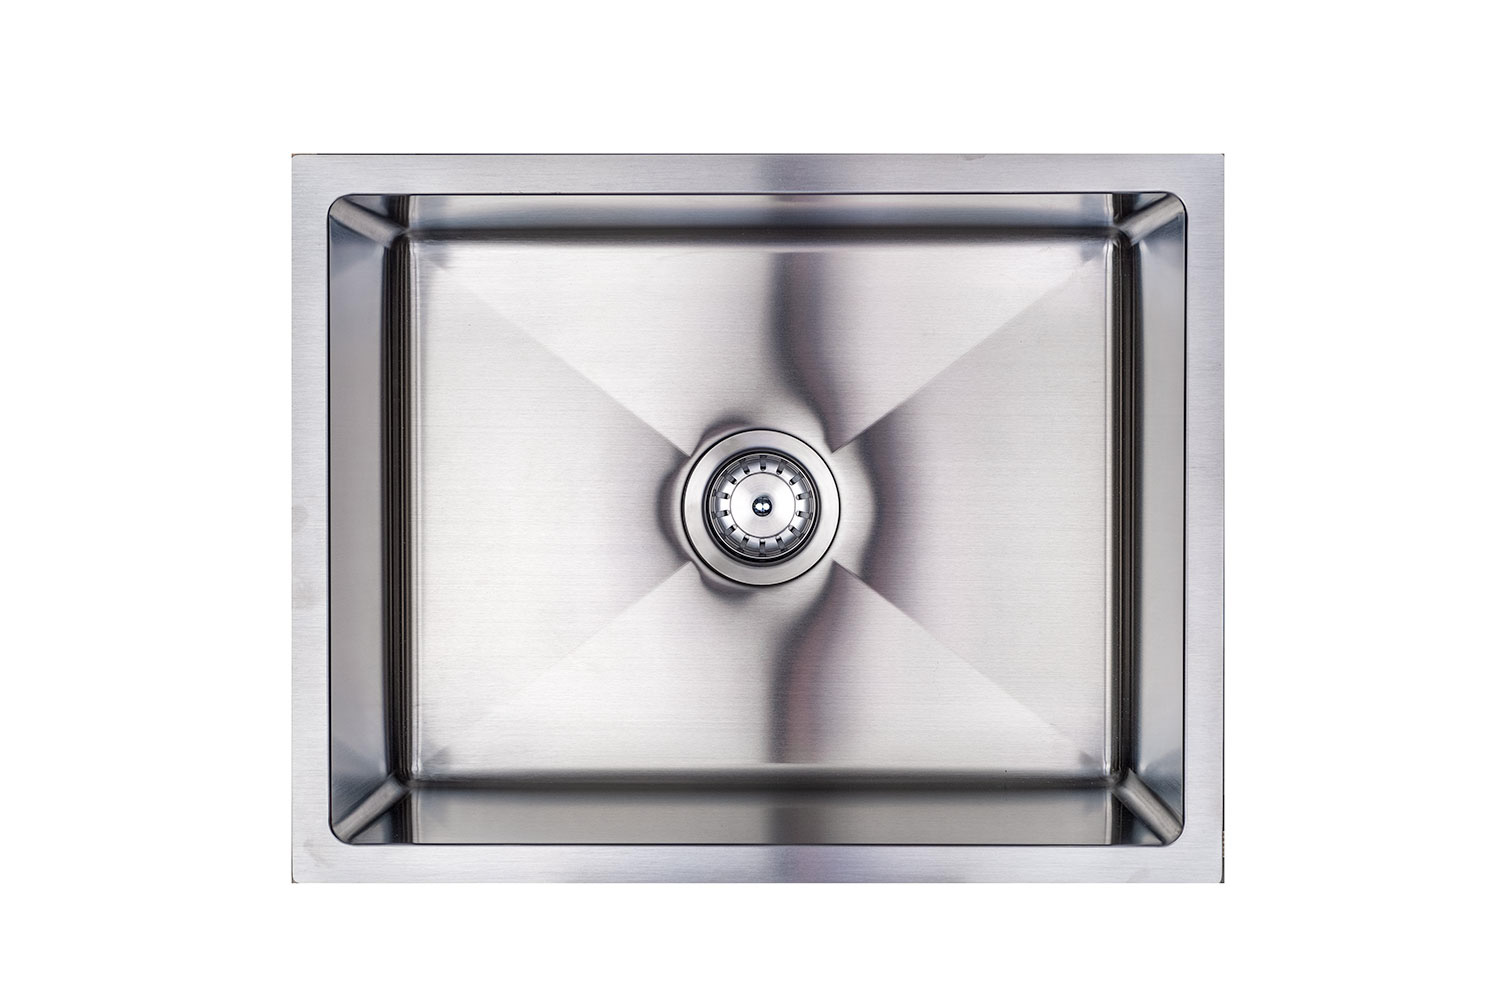 EVO2318 Single Bowl Sink